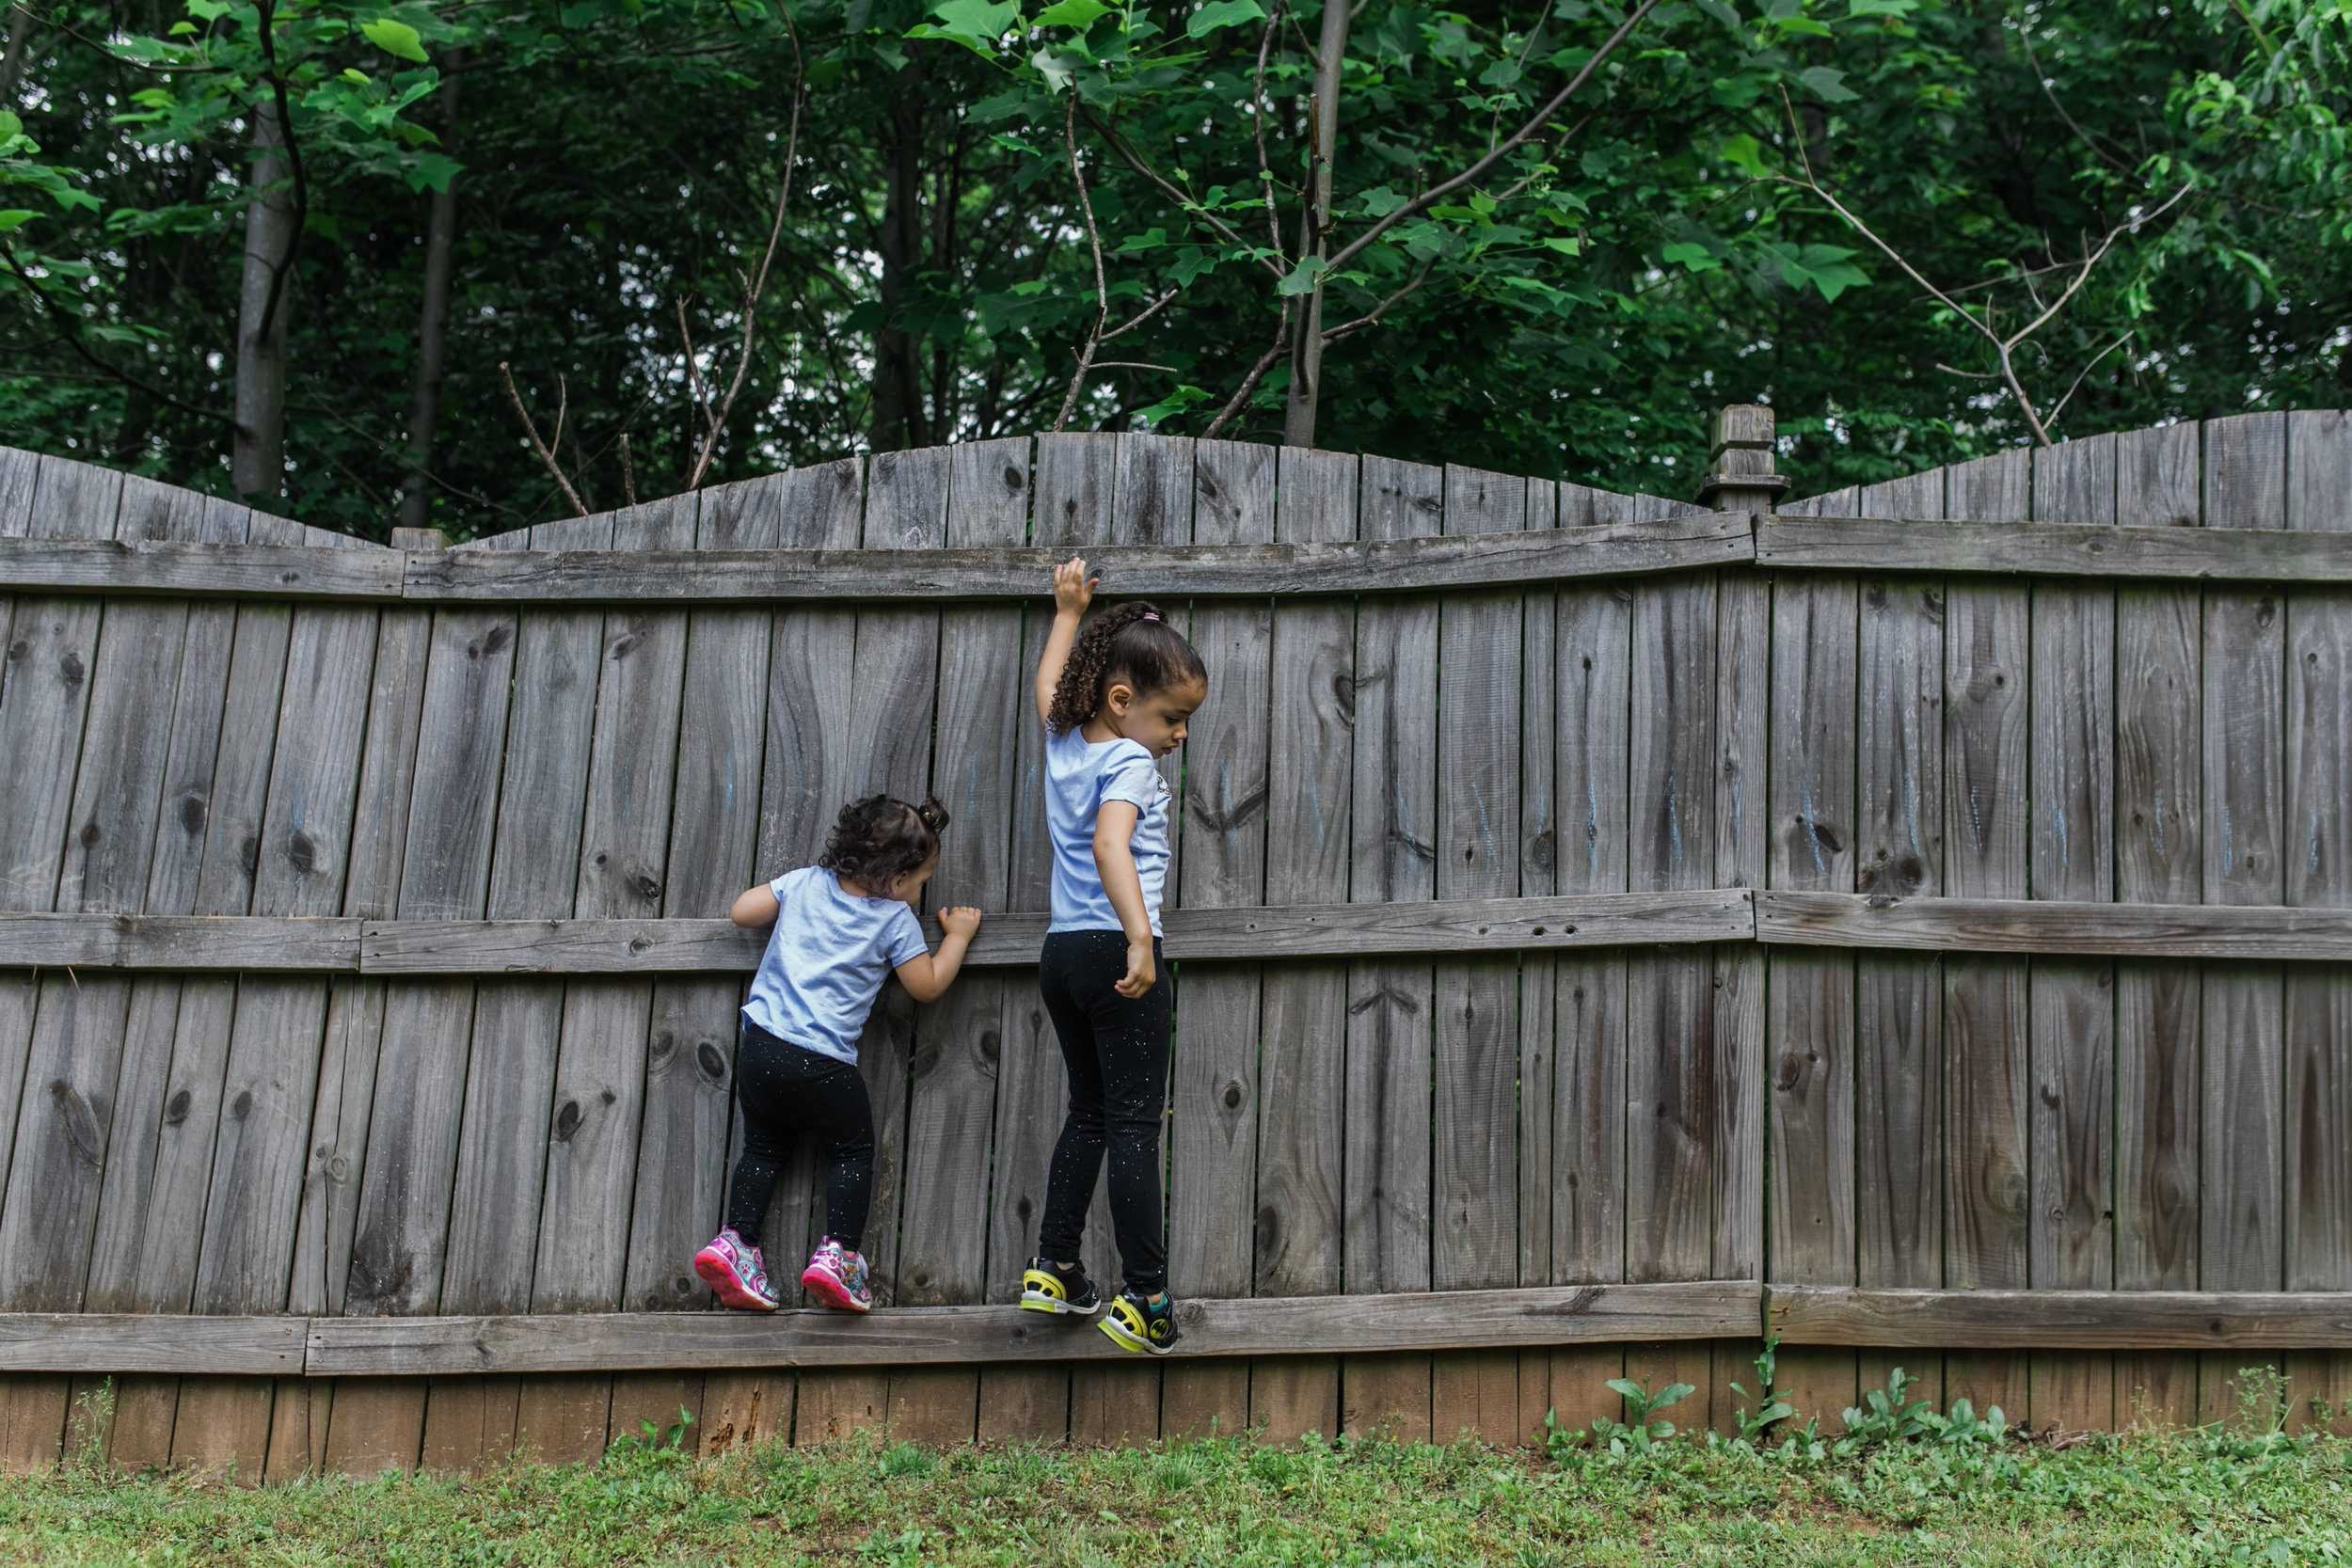 two girls climb on a fence